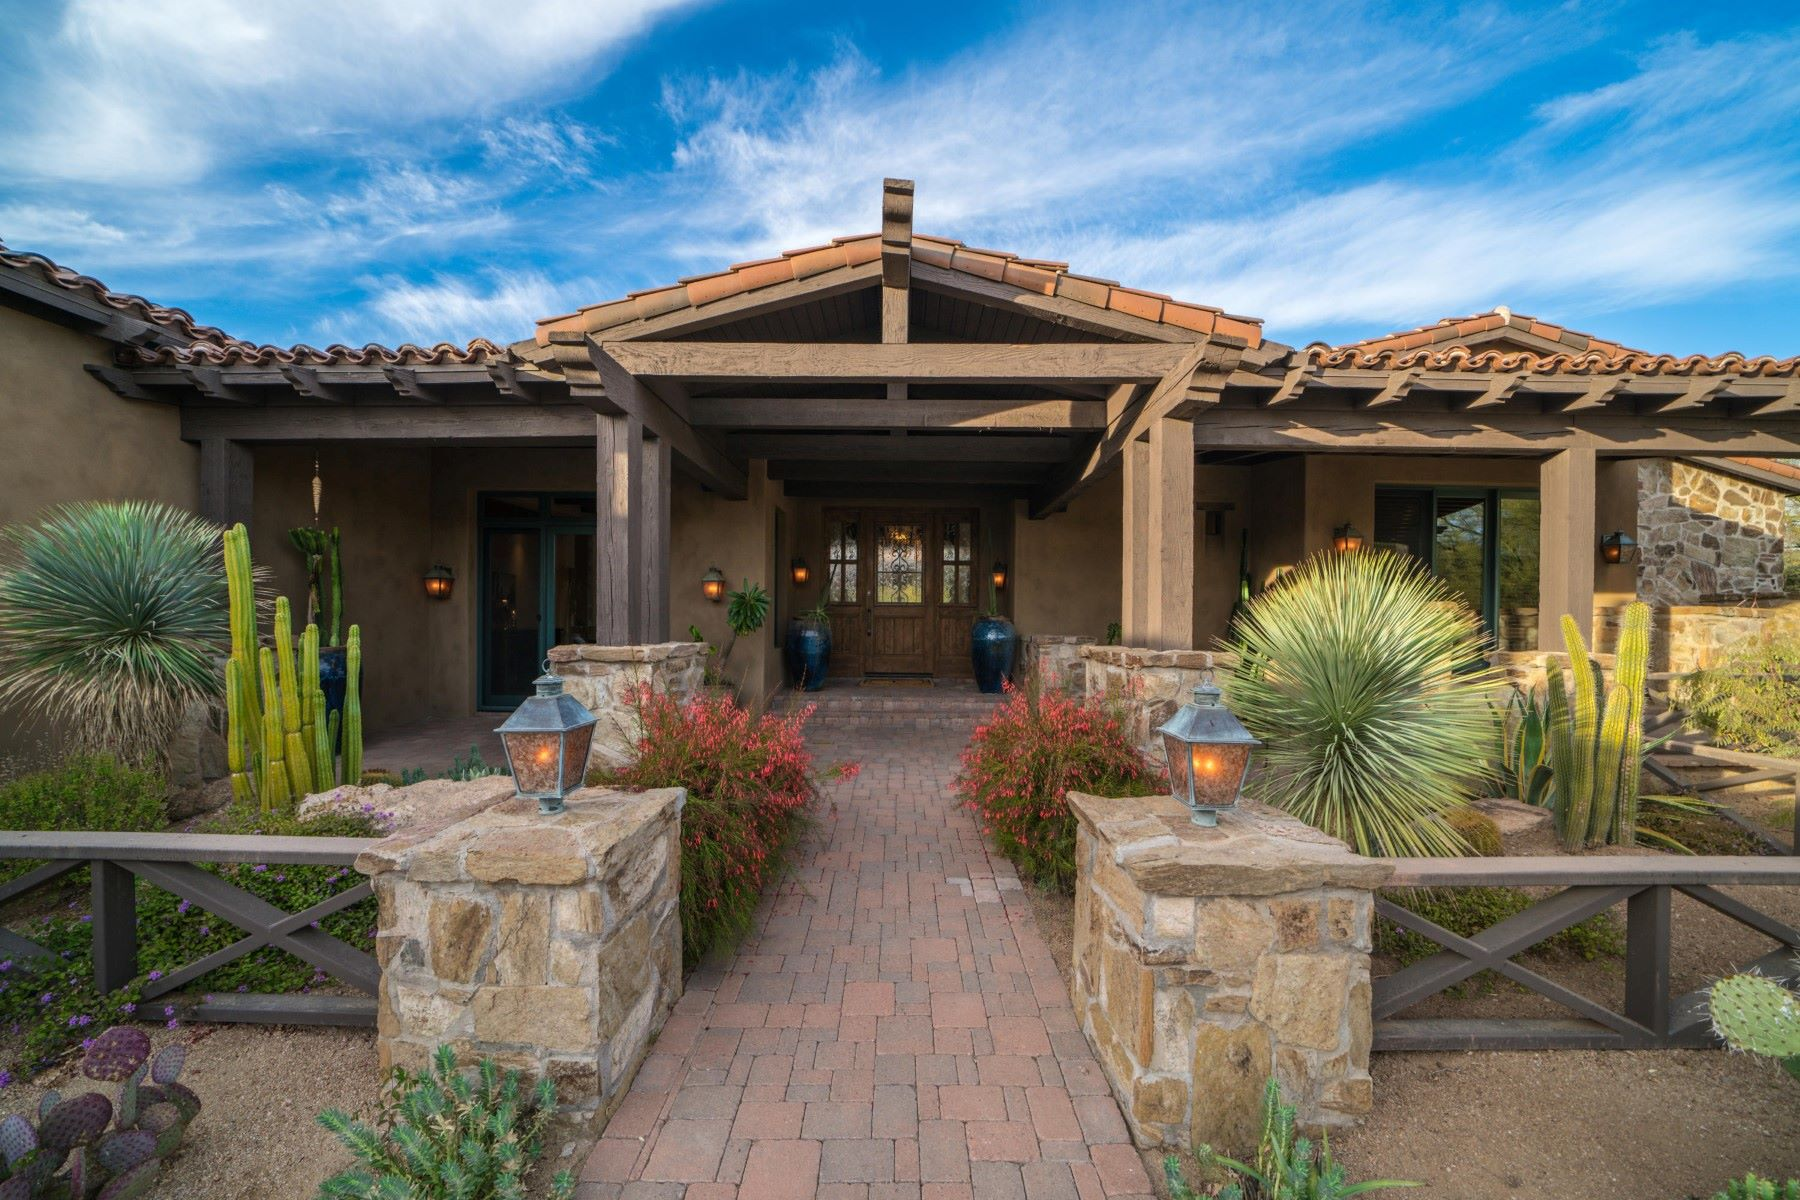 獨棟家庭住宅 為 出售 在 Timeless Ranch Inspired Home in Whisper Rock 7414 E Lower Wash Pass, Scottsdale, 亞利桑那州, 85266 美國